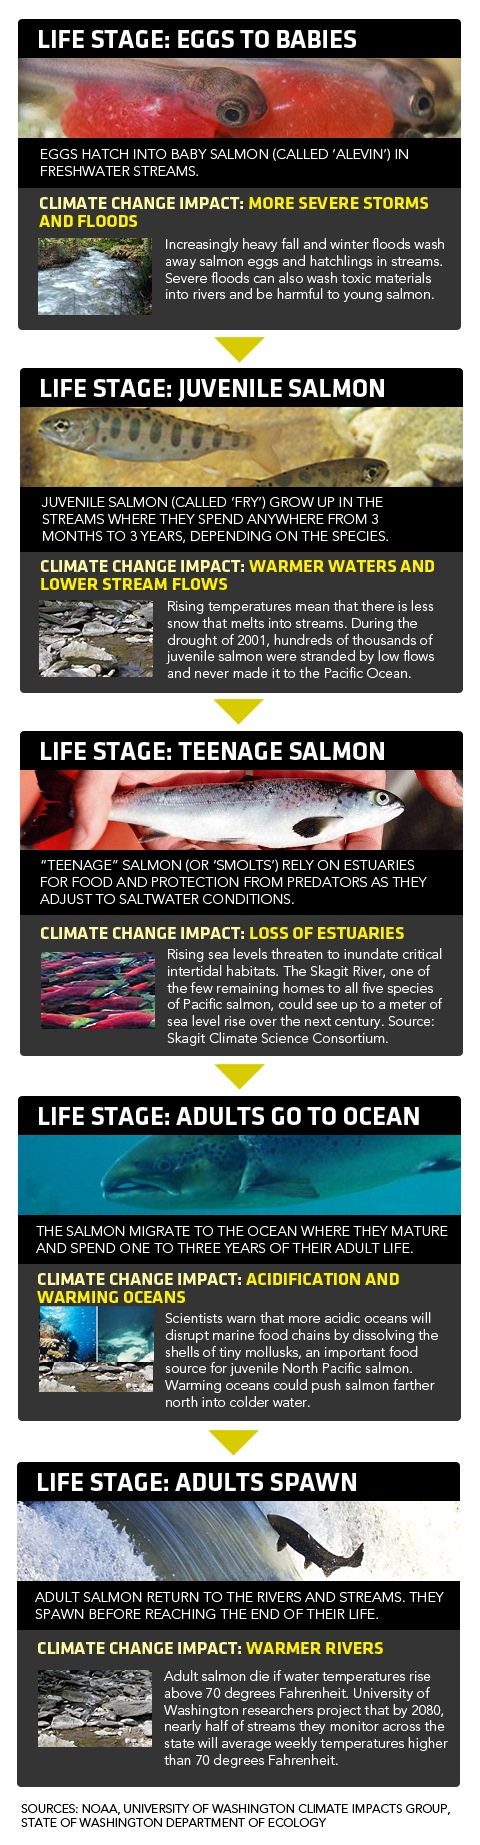 Climate Change Effects on Salmon